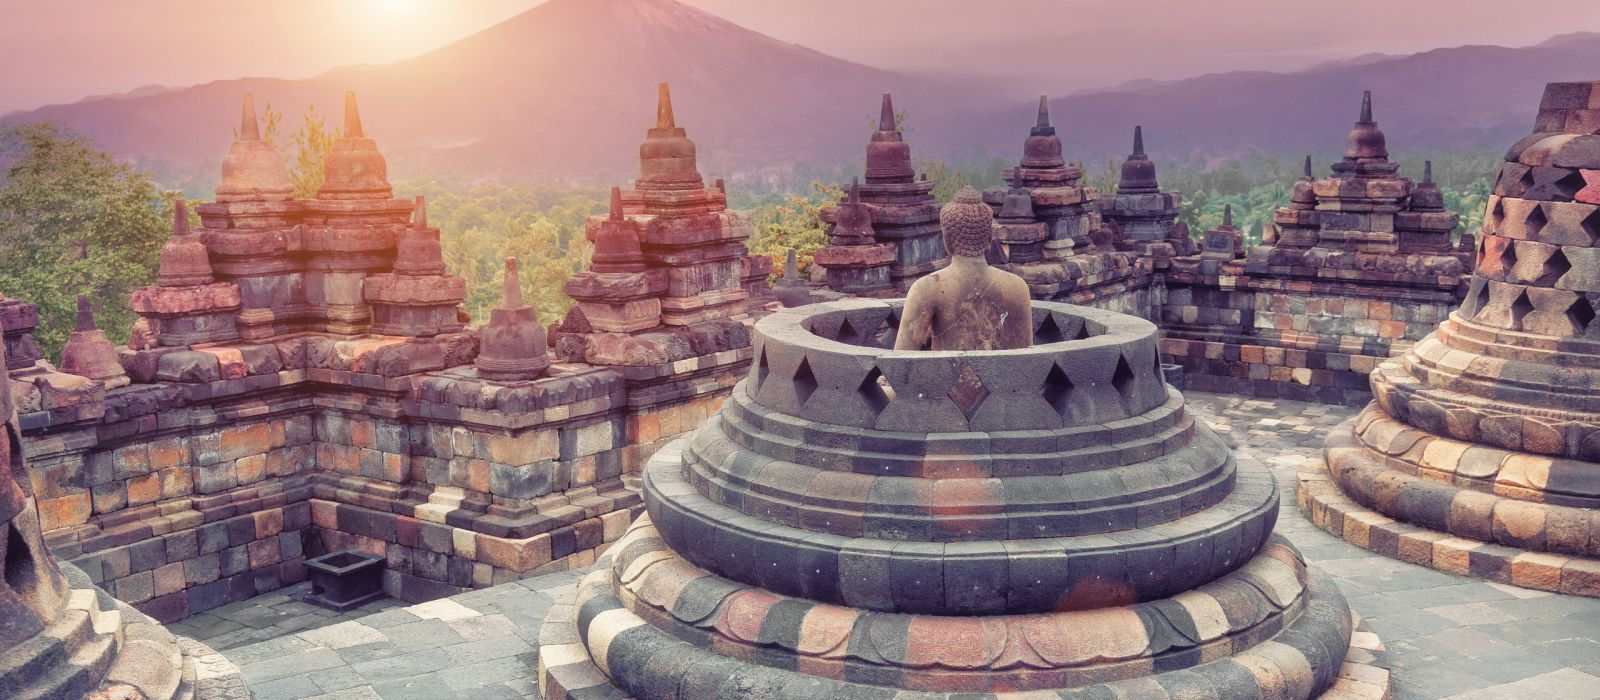 Destination Borobudur Indonesia